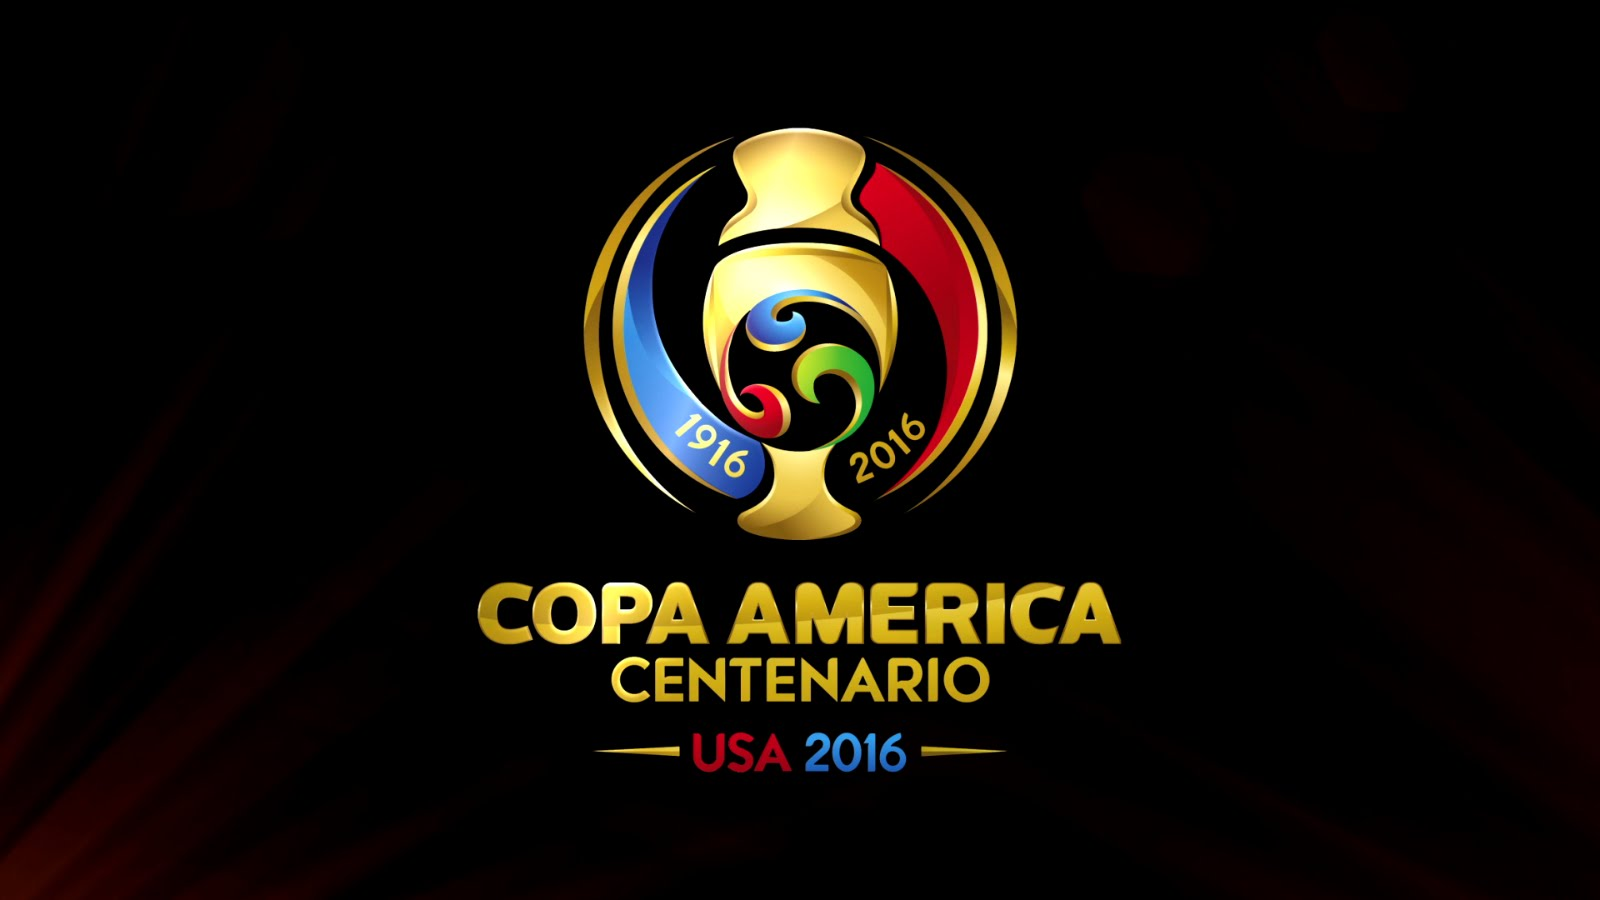 Copa América Centenario - escape digital